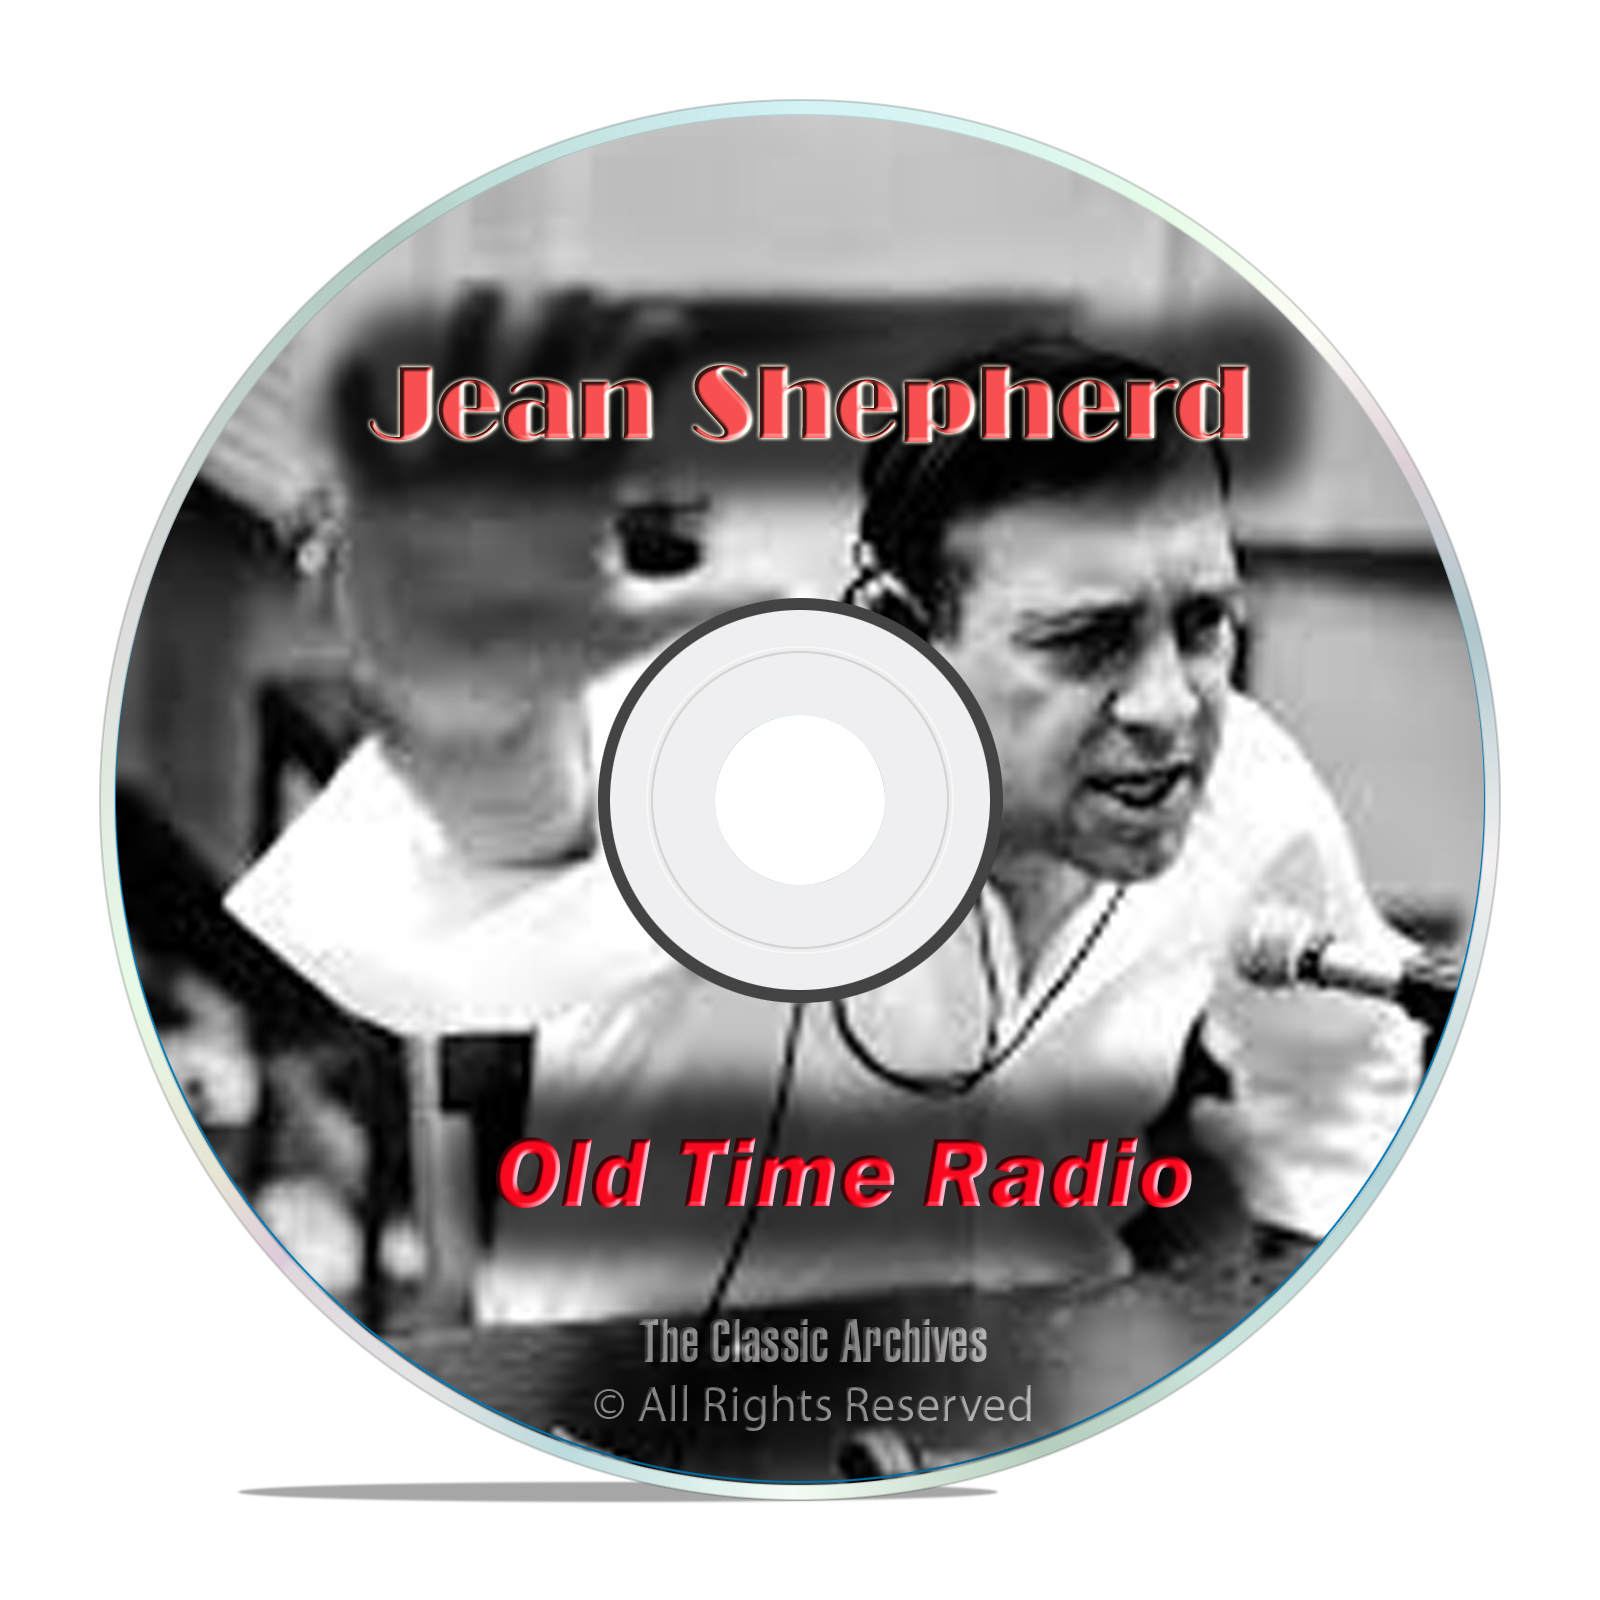 The Jean Shepherd Show, with bonus shows, 447 Old Time Radio Shows, OTR DVD